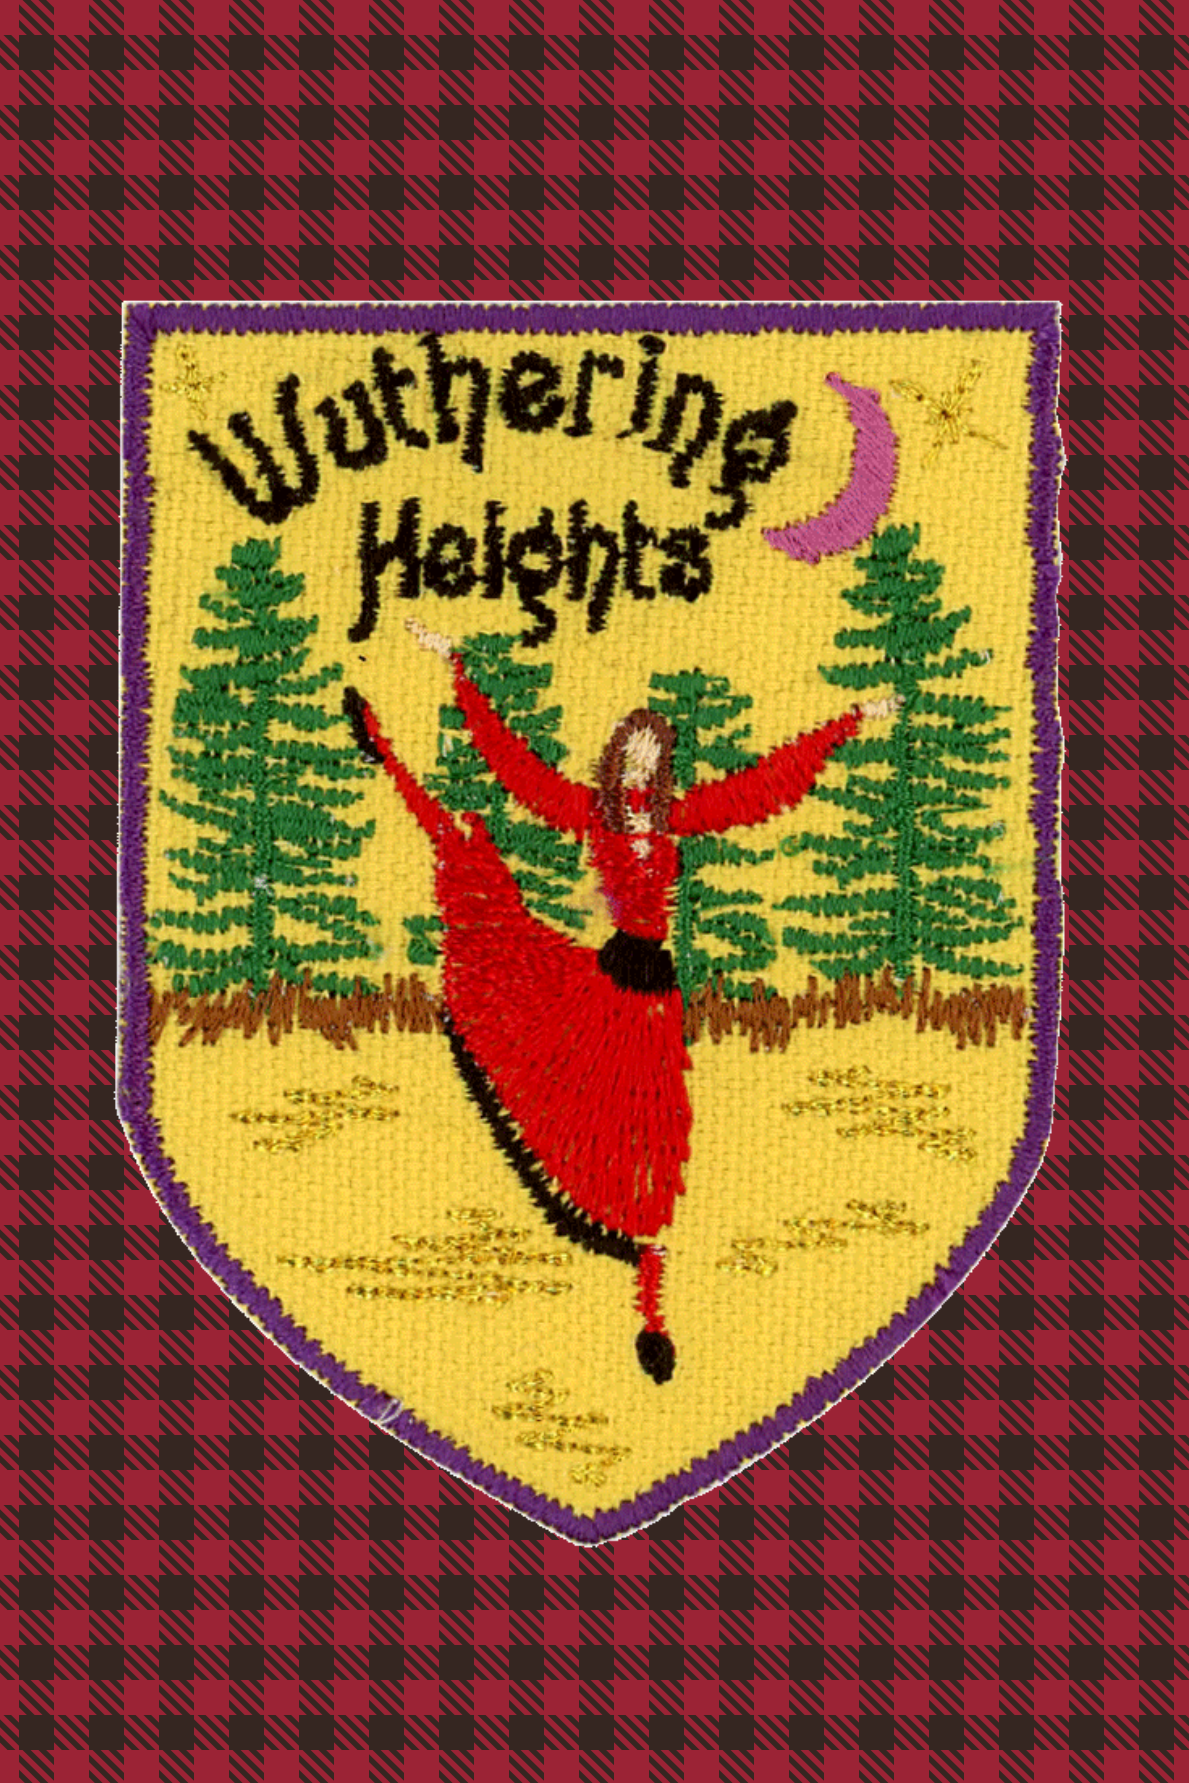 Wuthering Heights Patch